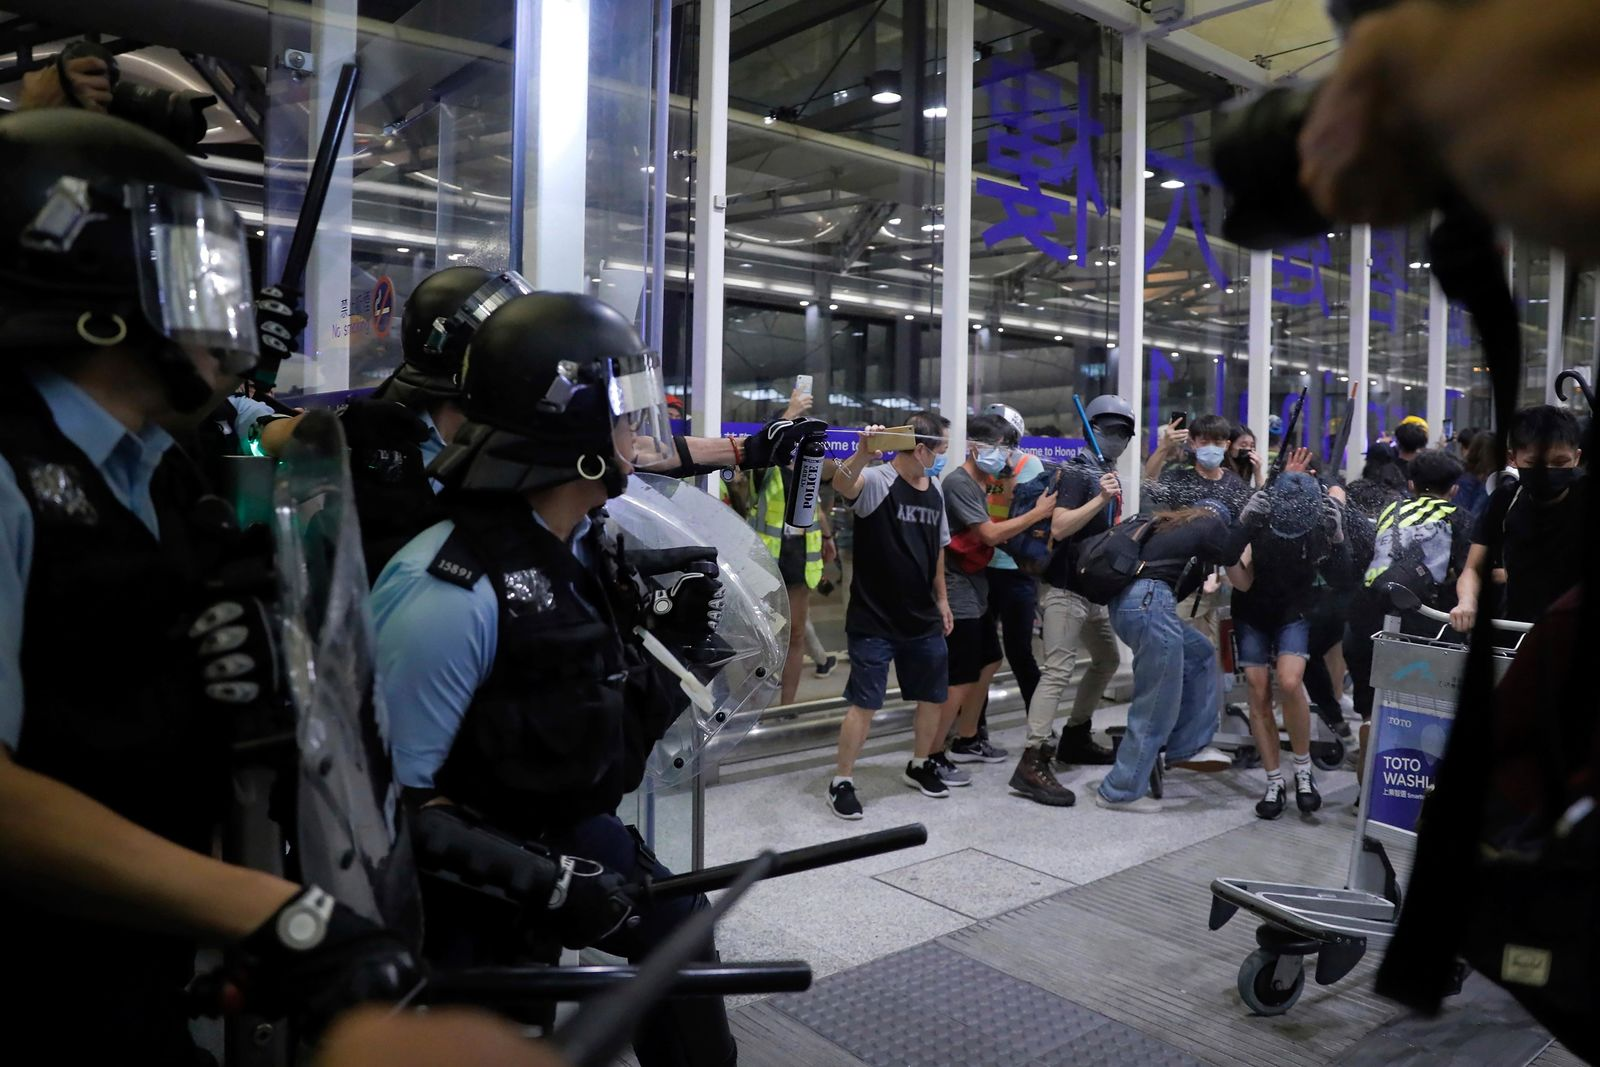 Policemen in riot gears use pepper spray on the protesters during a demonstration at the Airport in Hong Kong, Tuesday, Aug. 13, 2019. Chaos has broken out at Hong Kong's airport as riot police moved into the terminal to confront protesters who shut down operations at the busy transport hub for two straight days. (AP Photo/Kin Cheung)